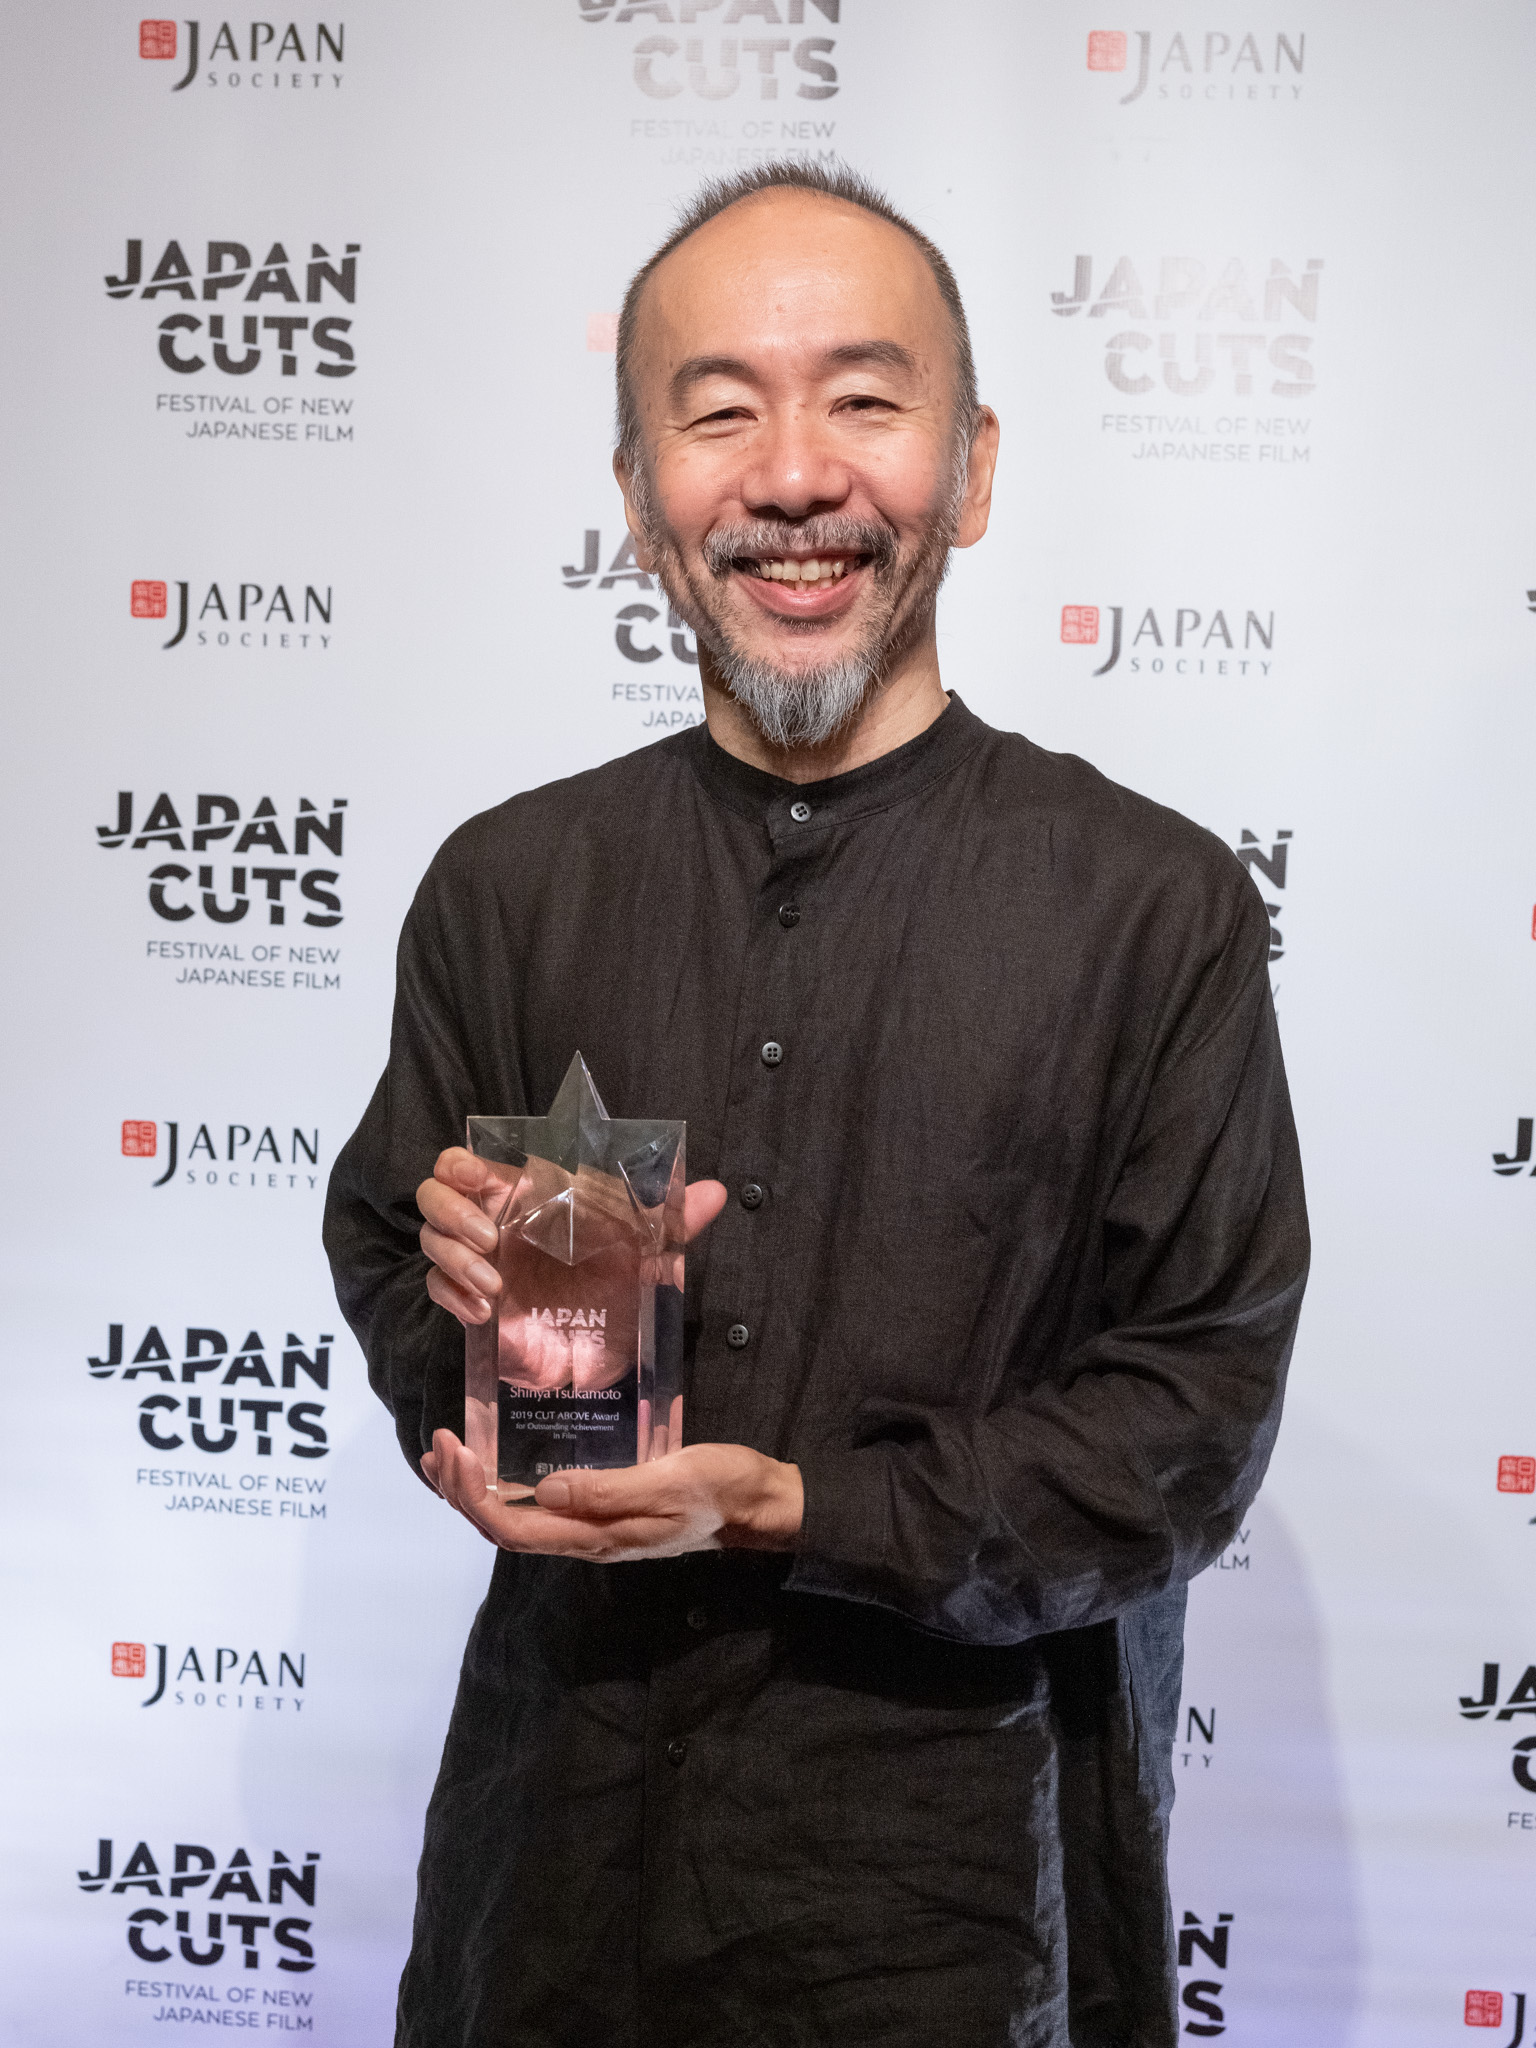 JQ Magazine: JQ&A with Director Shinya Tsukamoto at JAPAN